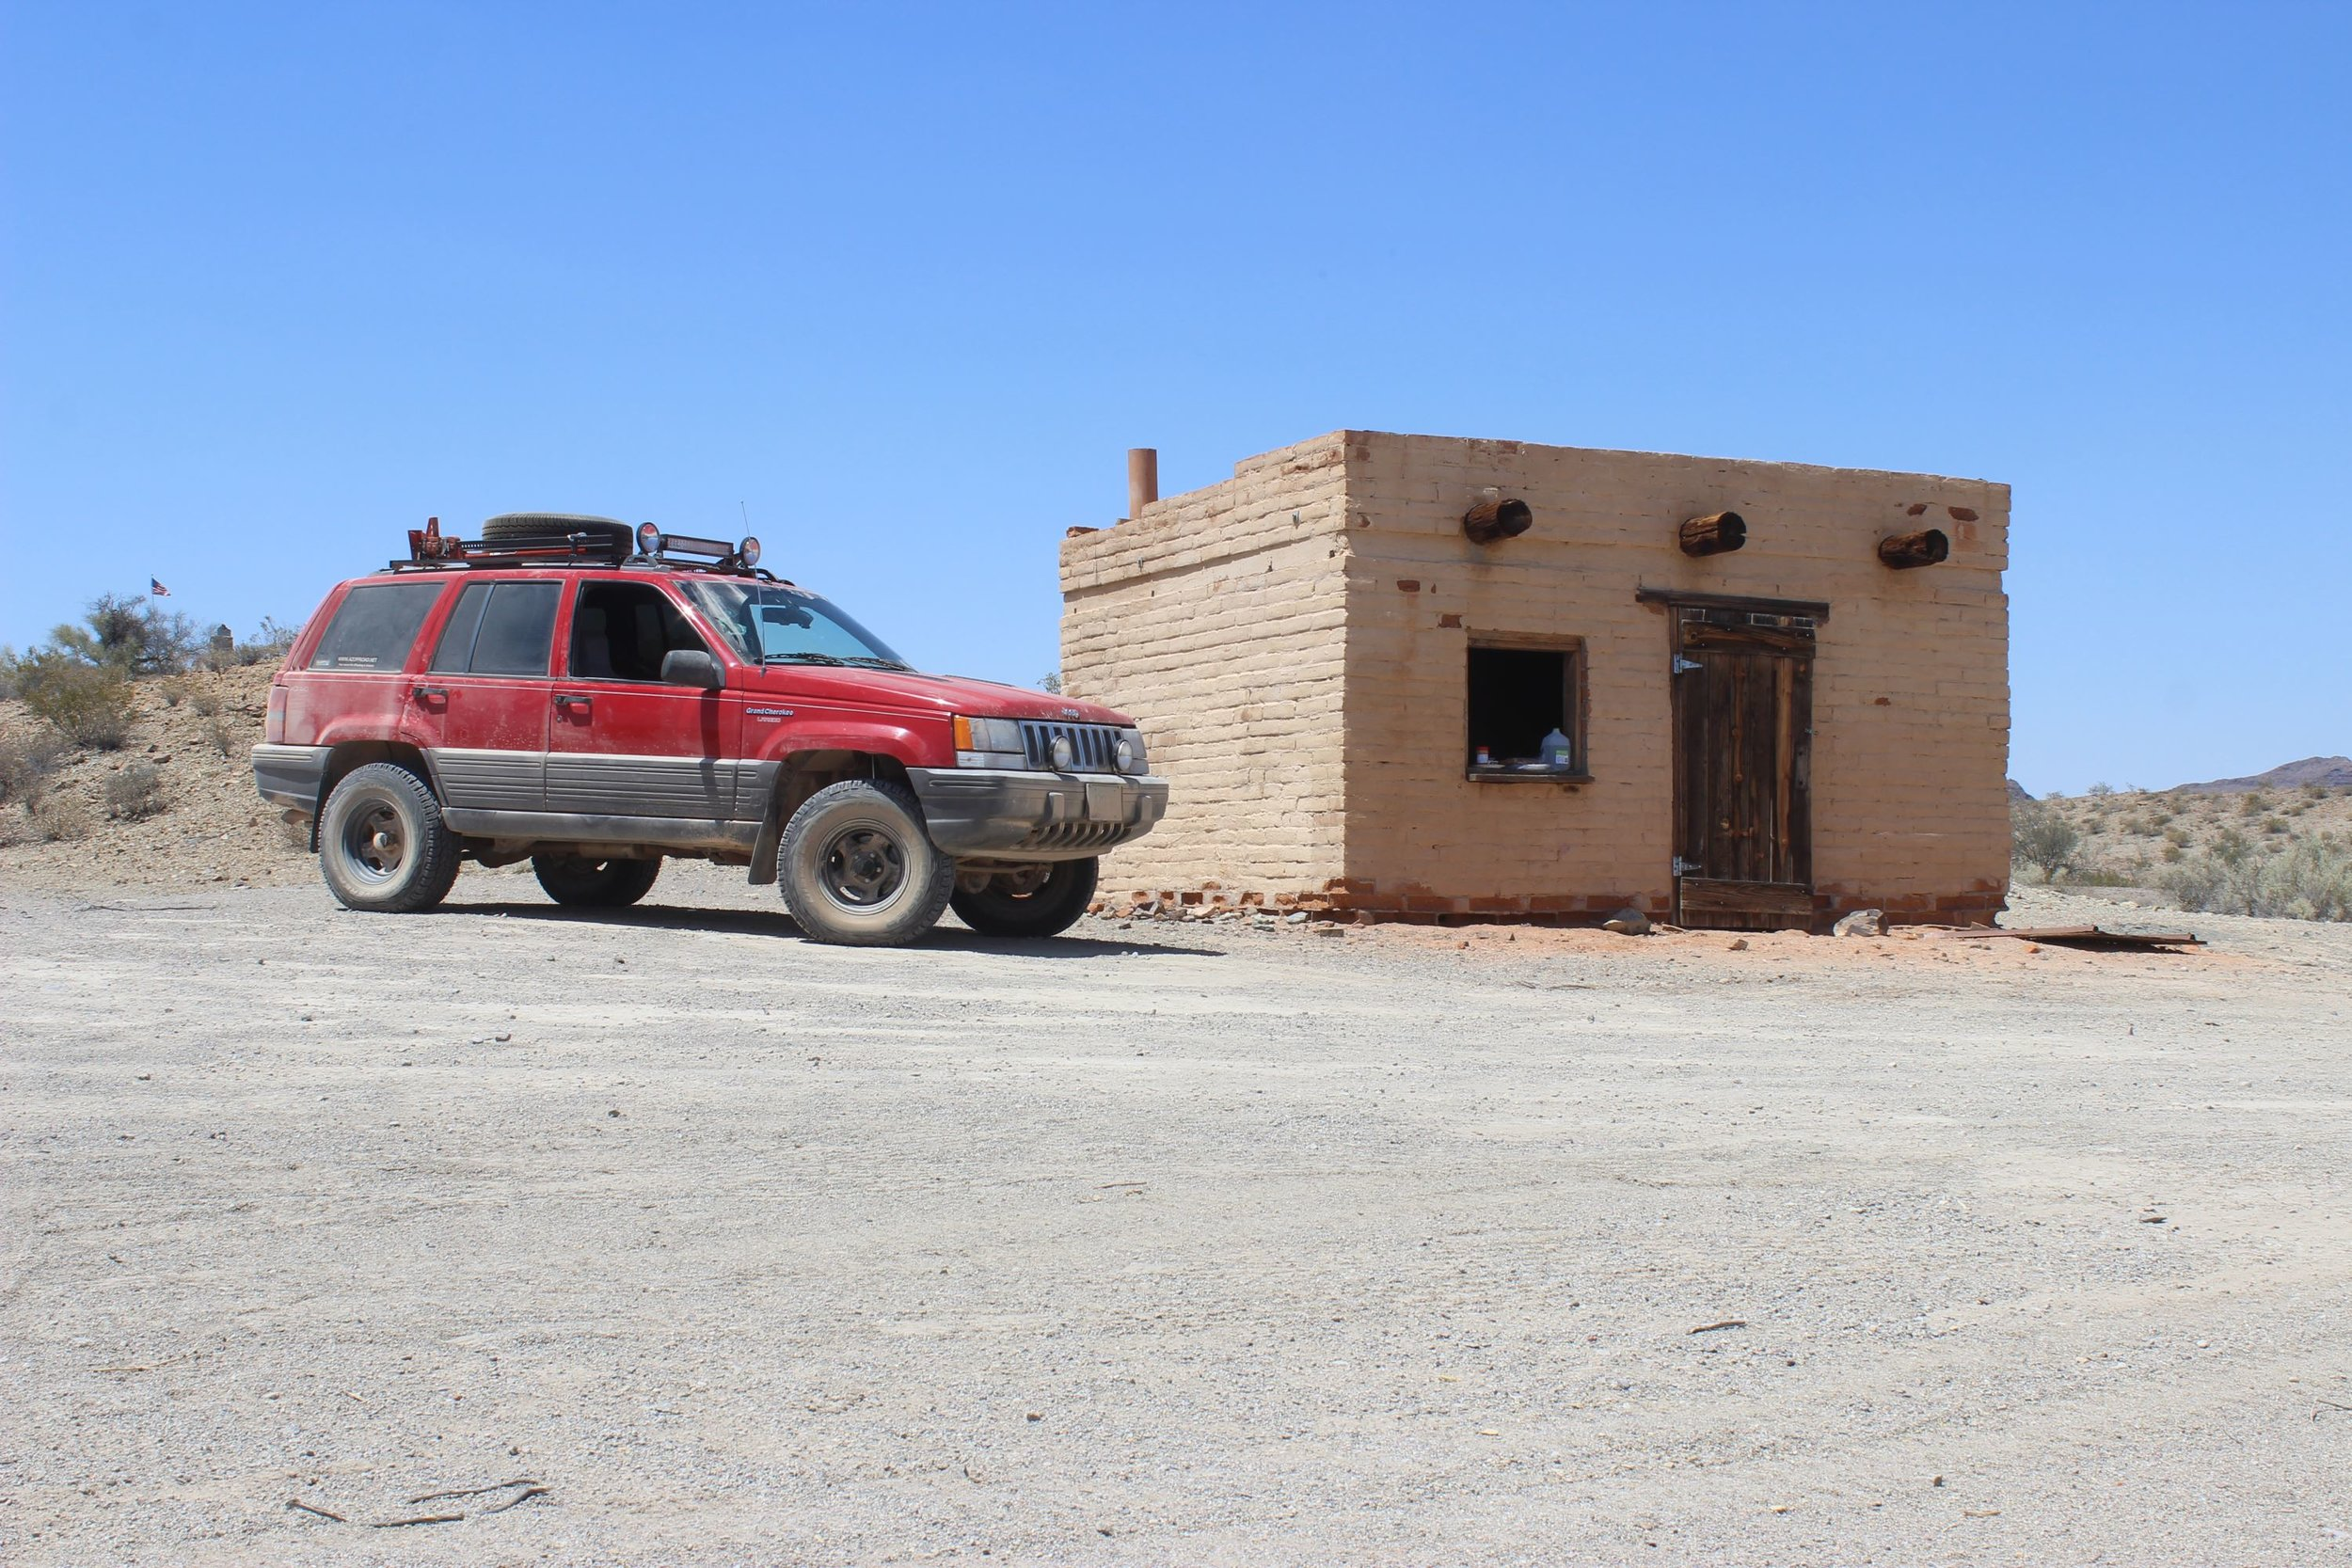 Lunch stop at Tule Well.